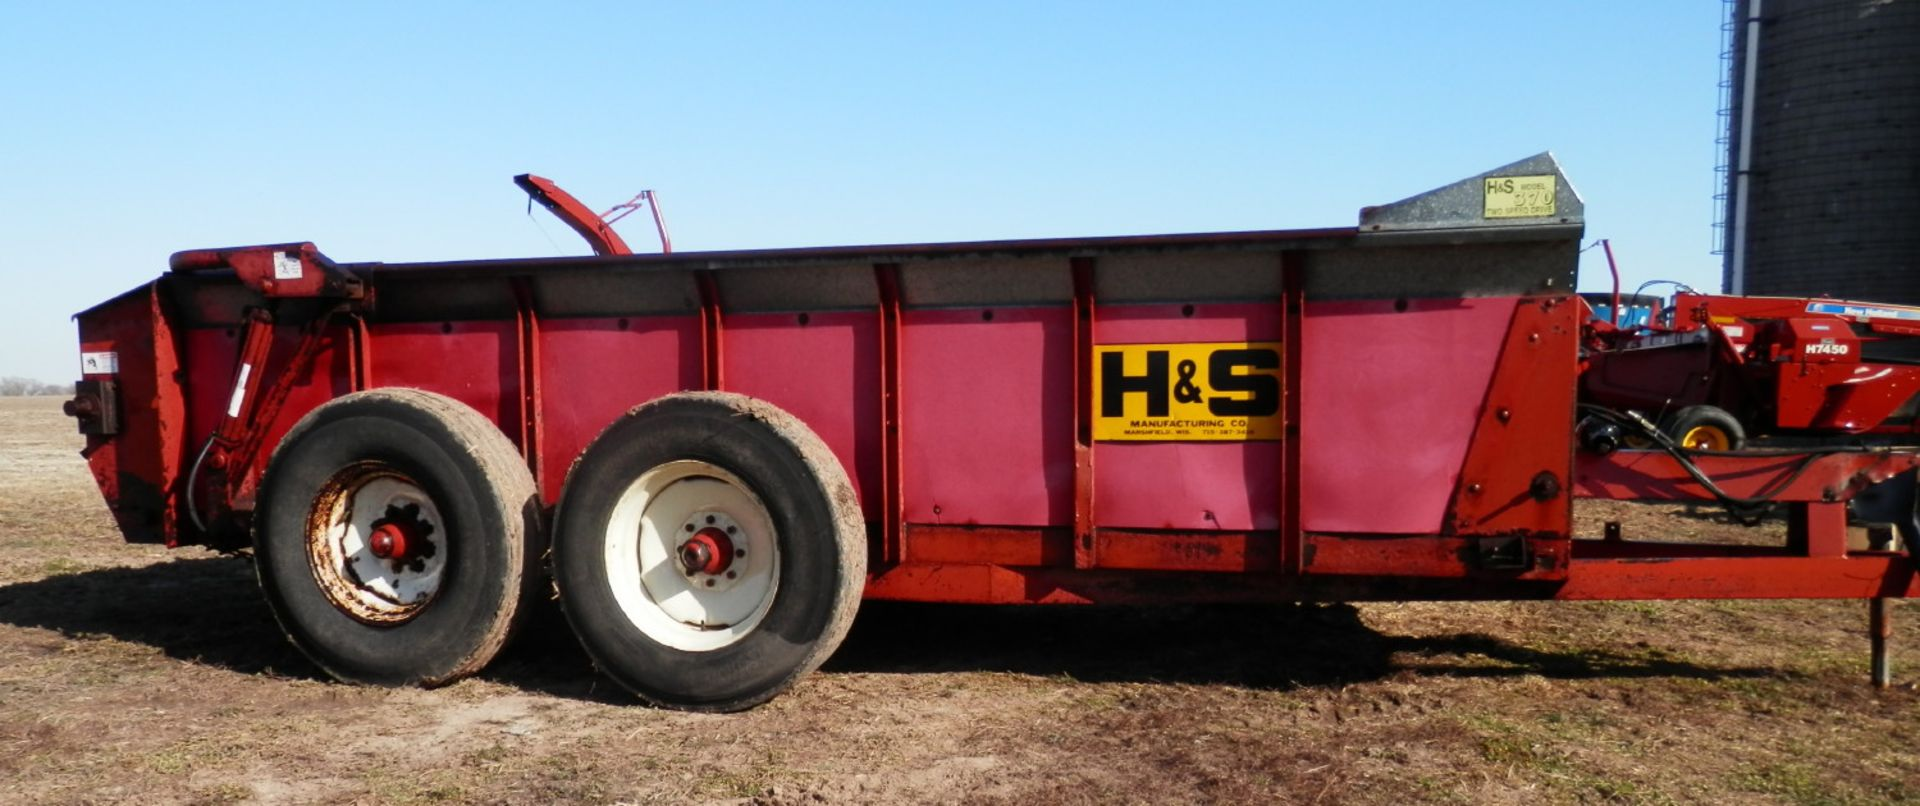 H&S 370 TANDEM AXLE MANURE SPREADER - Image 2 of 8